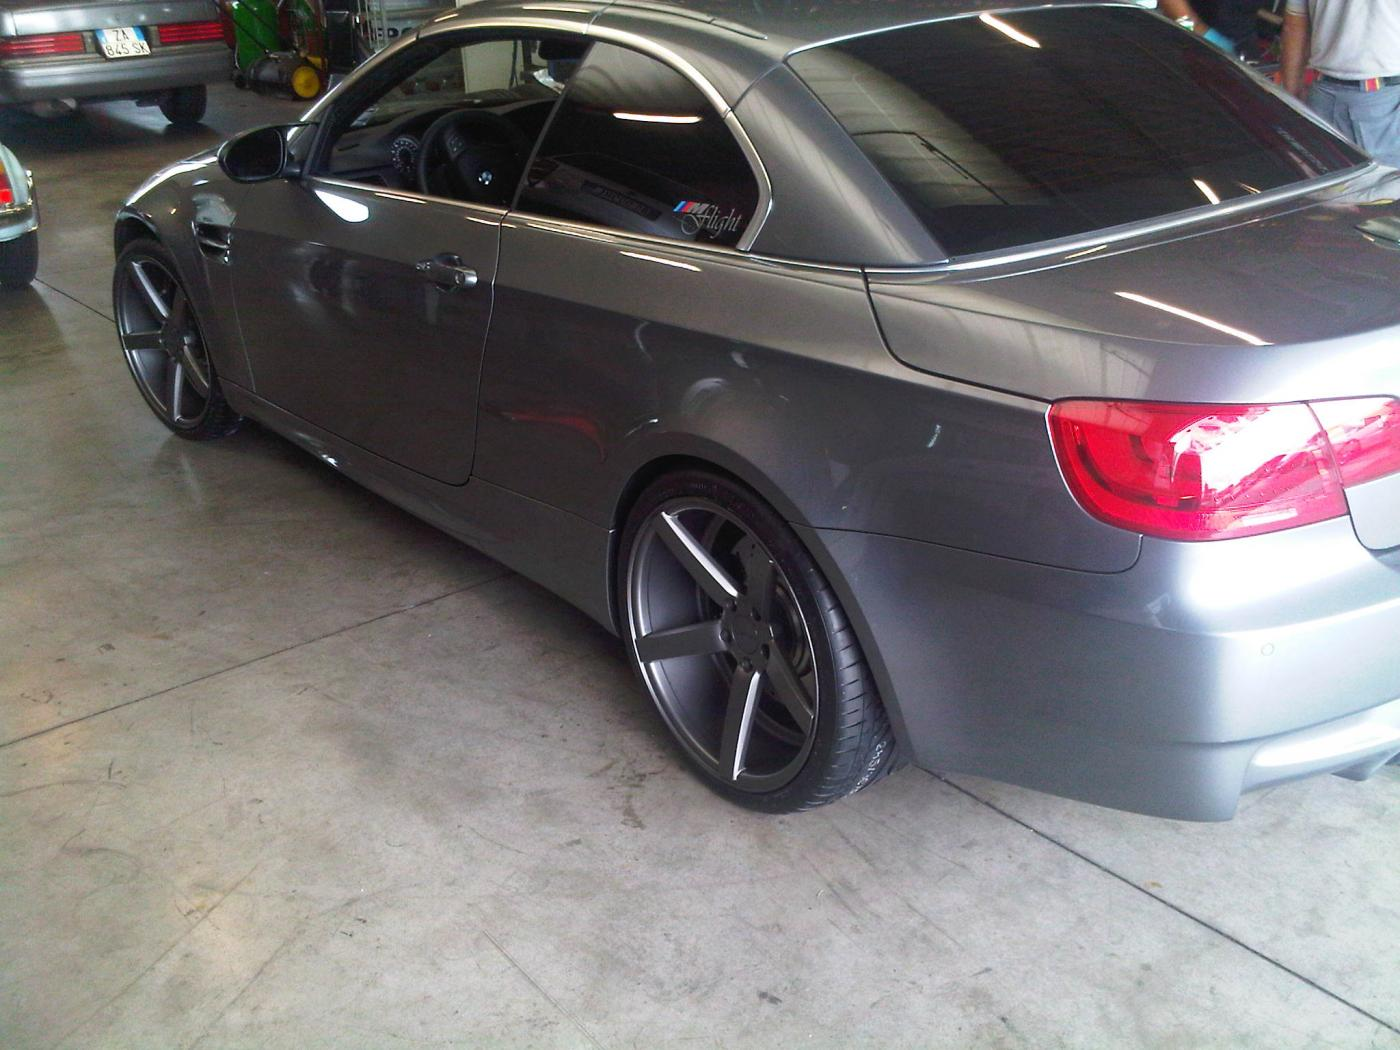 Fronts 255 30 20 Rear 285 30 20 Spacers Rubbing